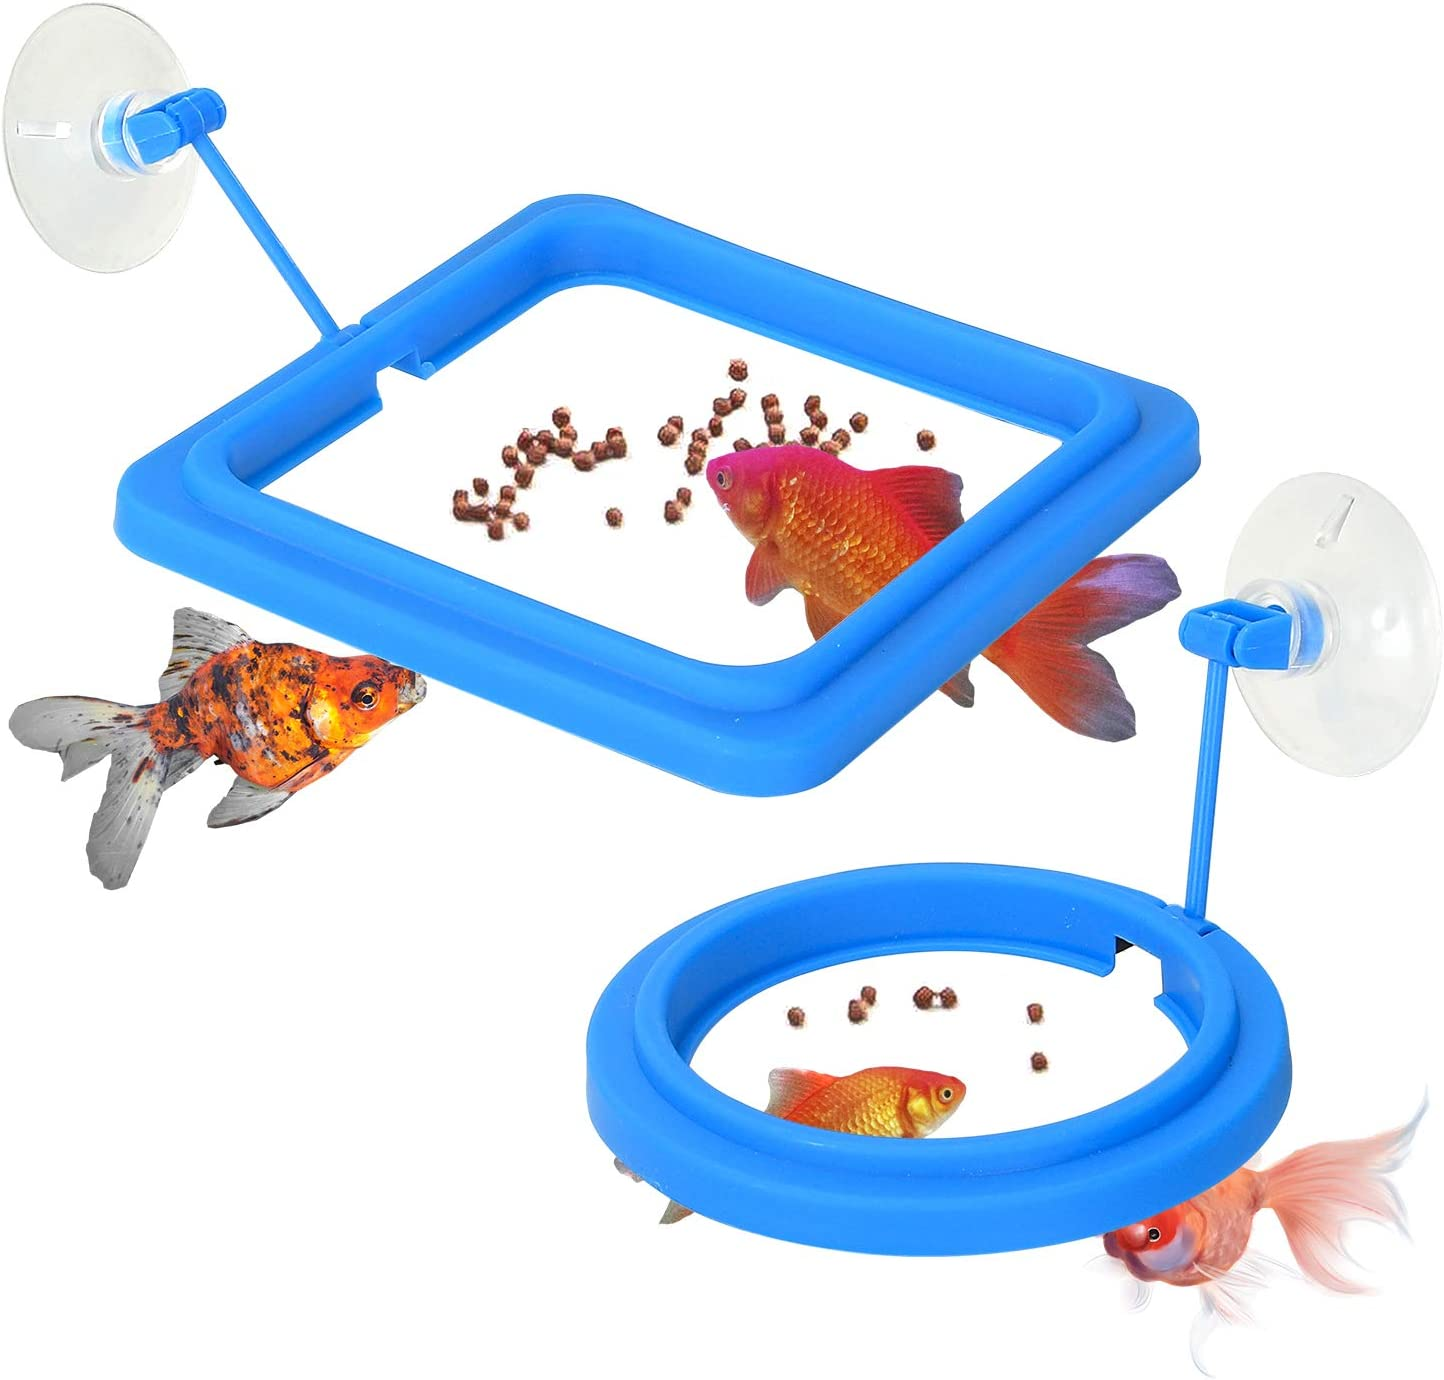 Sockeroos 2 Pcs Fish Feeding Ring, Floating Food Feeder Square & Round with Suction Cup, Easy to Install Aquarium, Suitable for Gordfish, Betta Fish, Guppy and More(Blue)